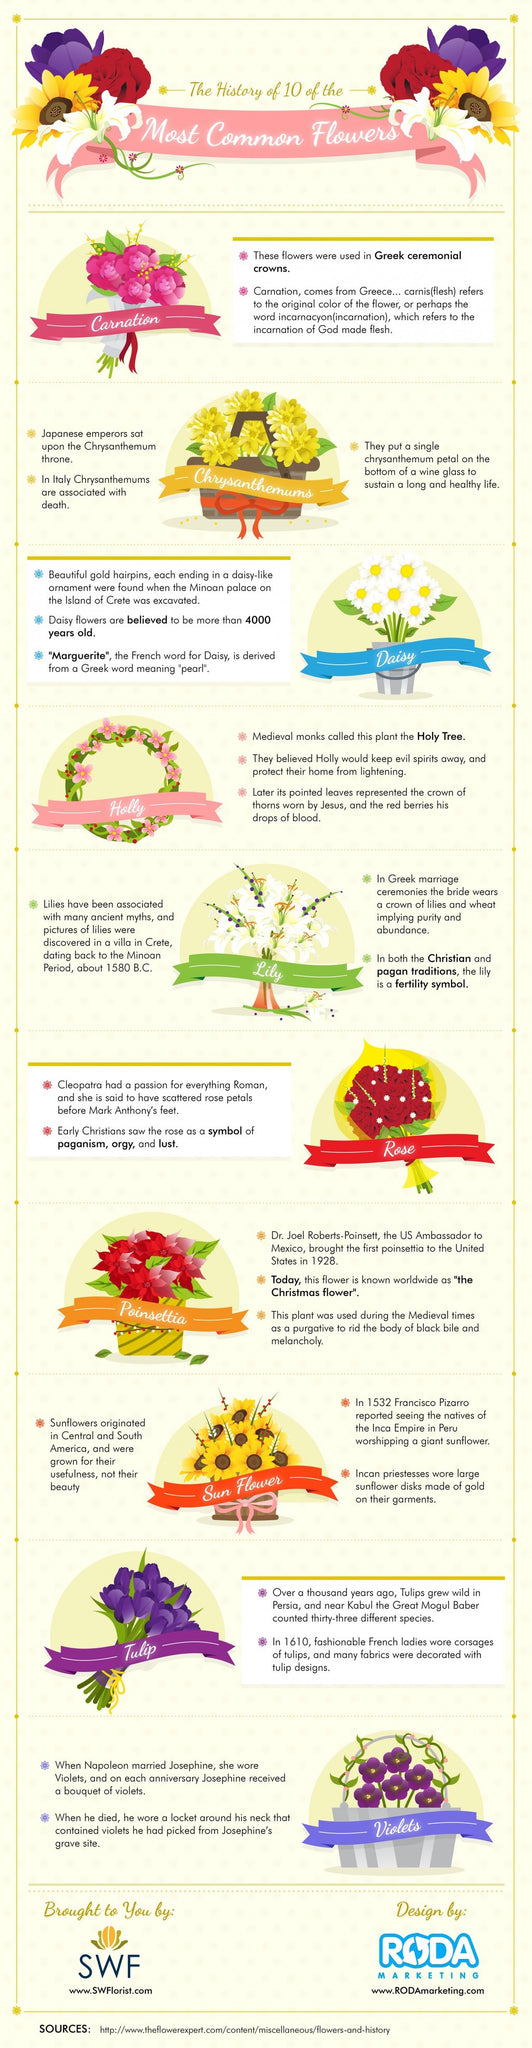 The Fabulous History of Flowers